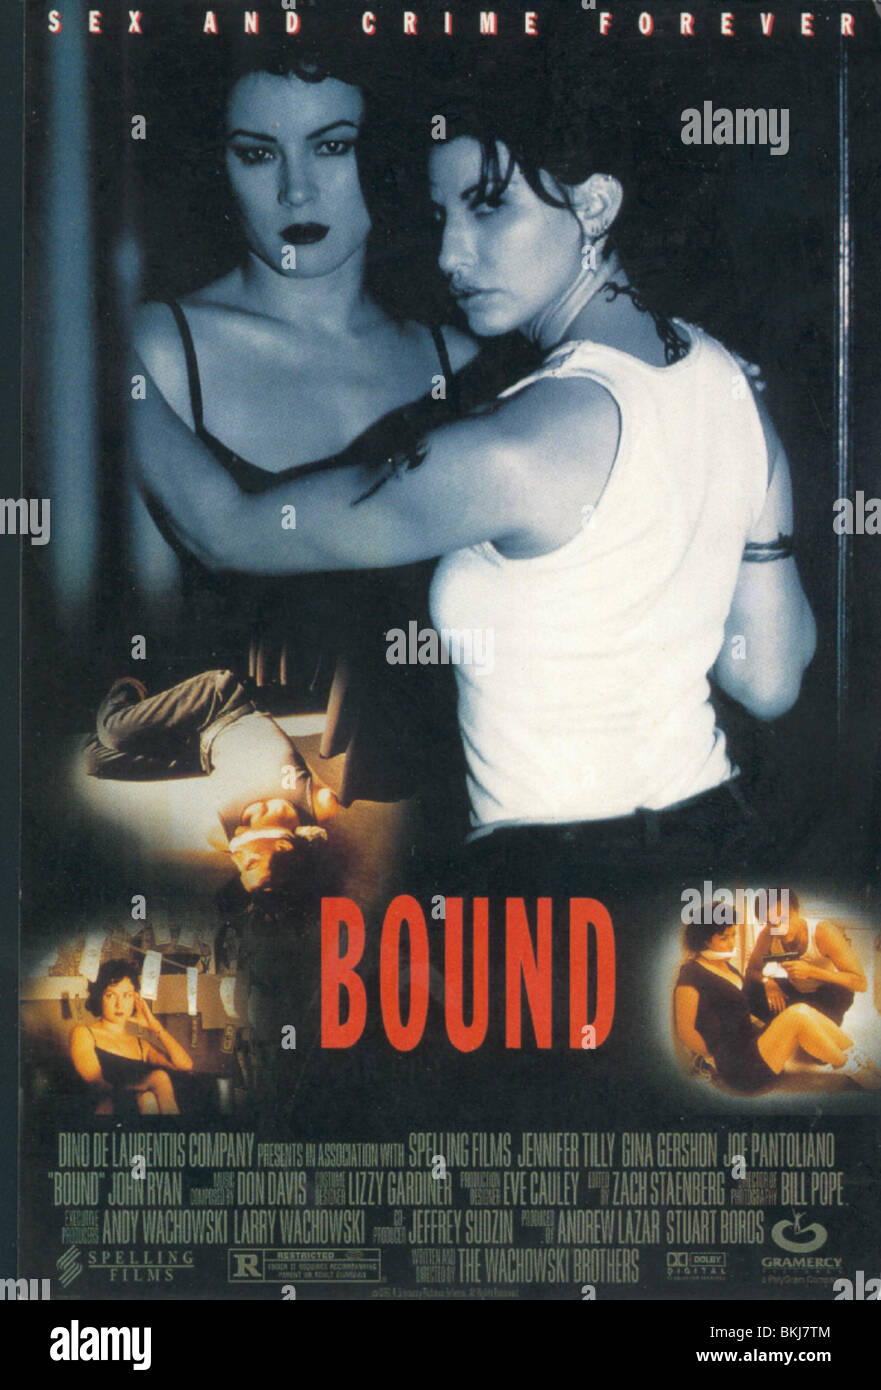 BOUND -1996 POSTER - Stock Image